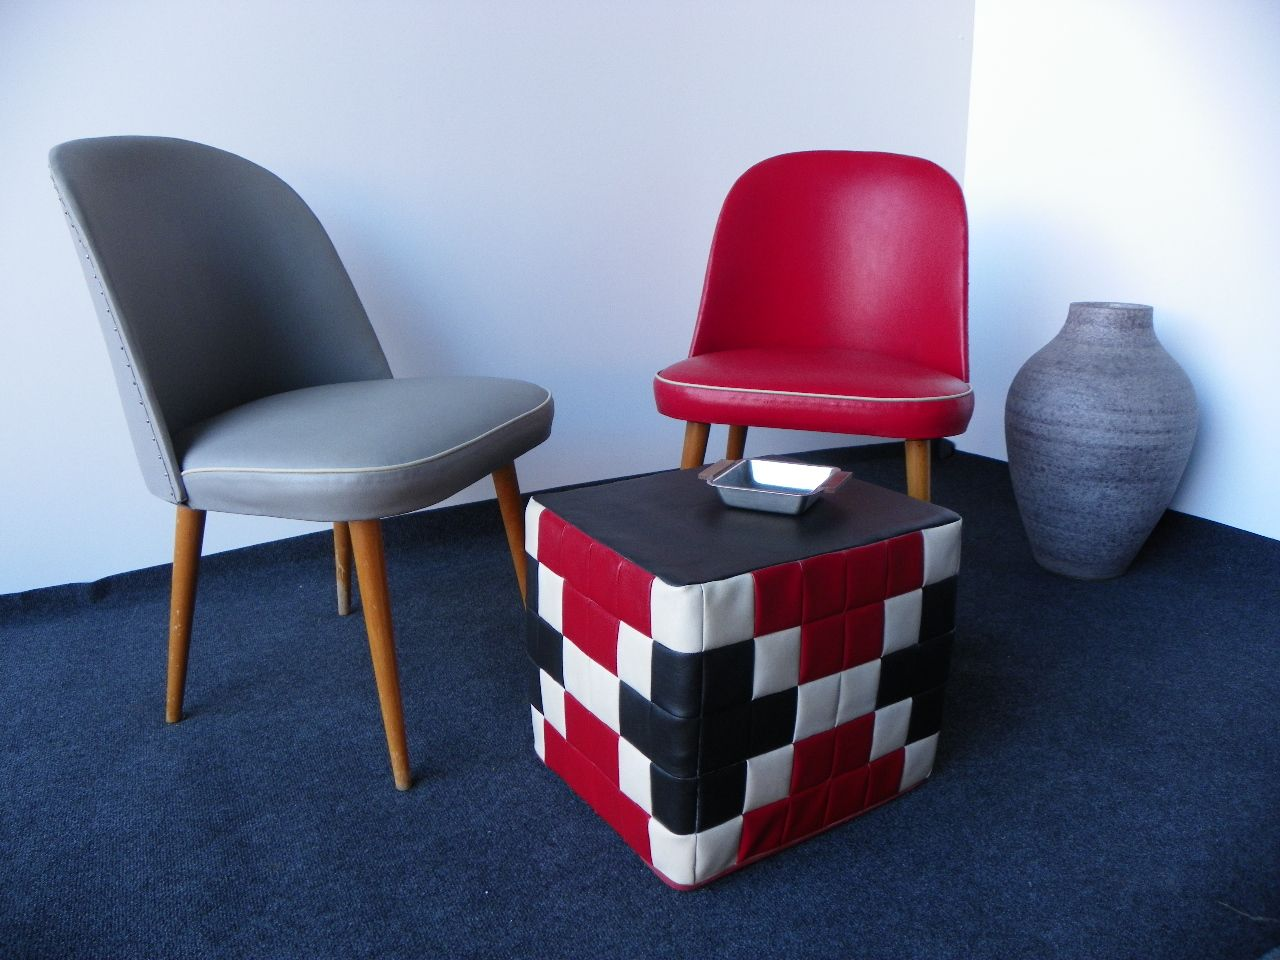 patchwork hocker 1970er bei pamono kaufen. Black Bedroom Furniture Sets. Home Design Ideas